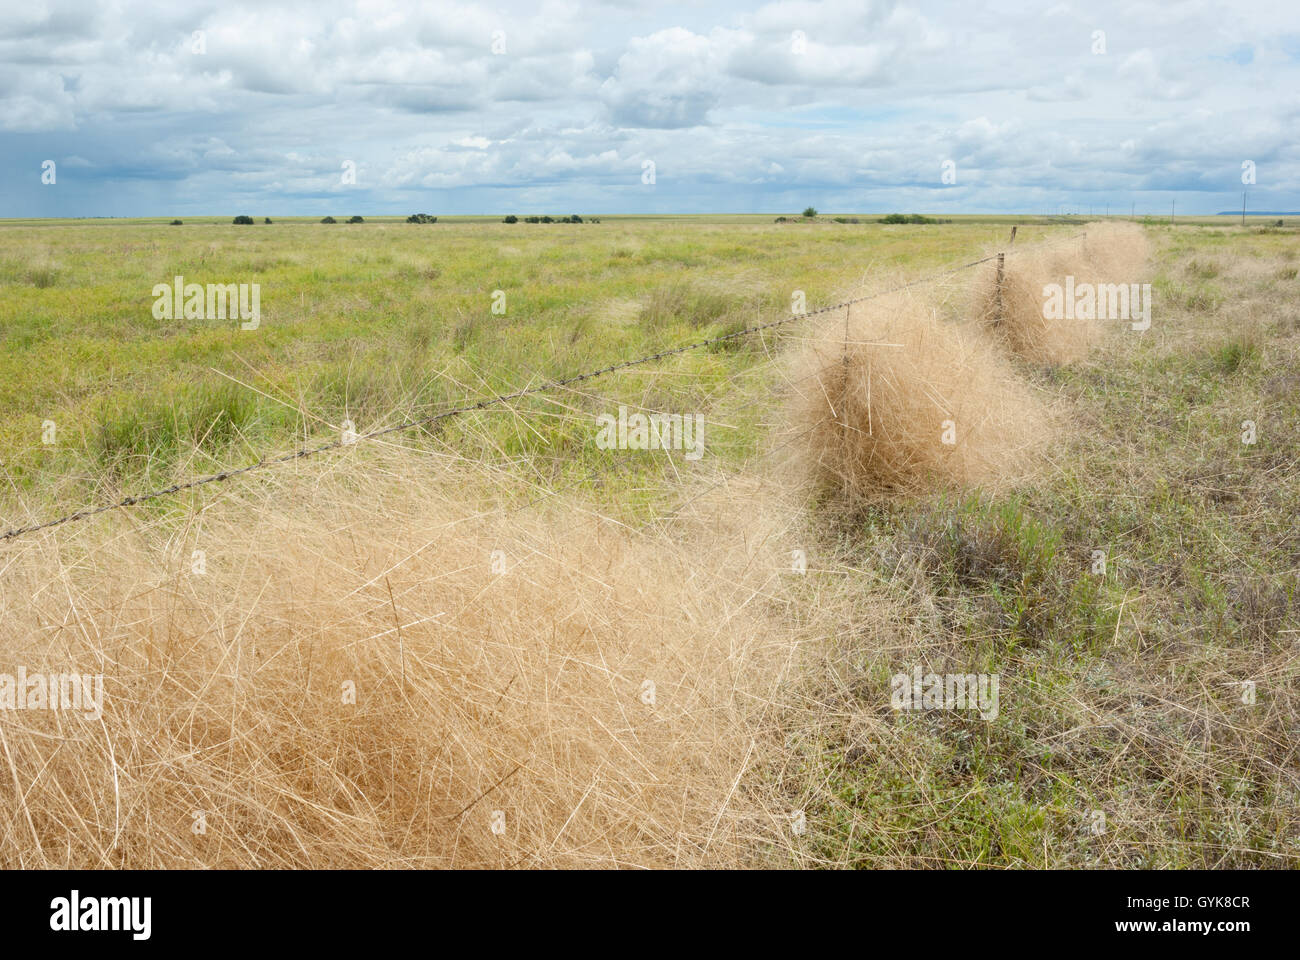 Green field with grass caught in barbed wire fence in outback - Stock Image